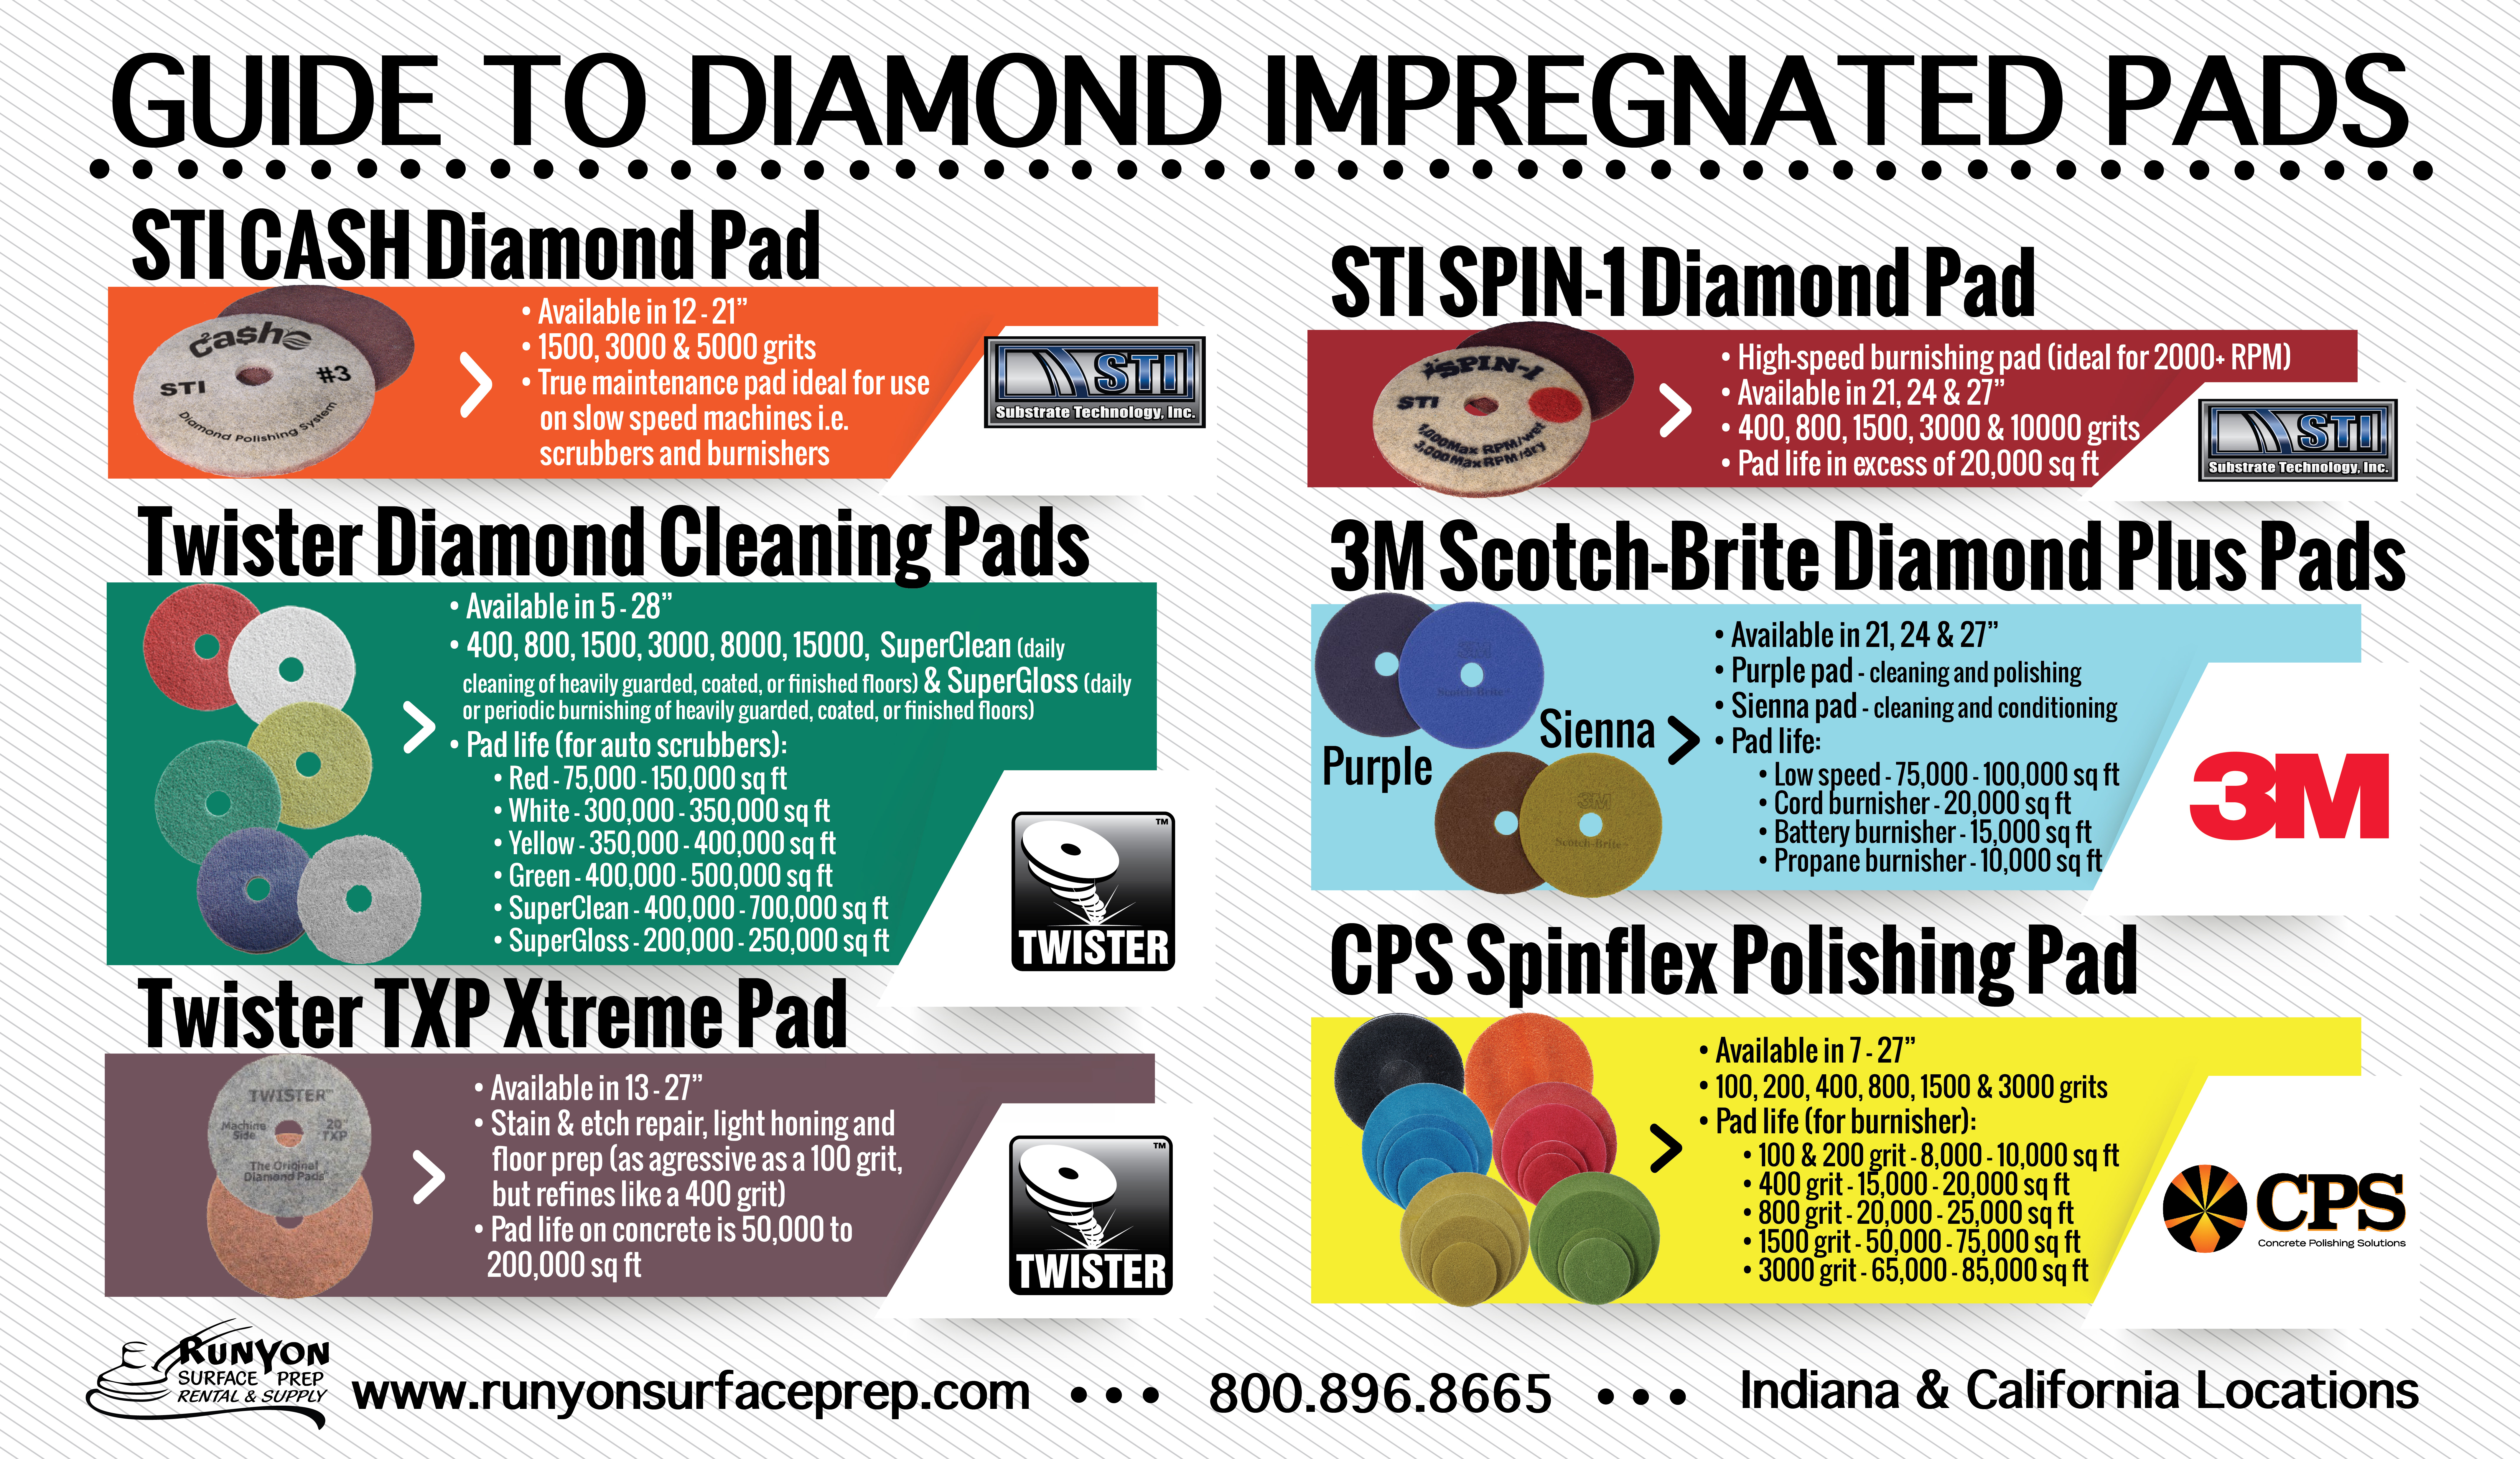 Guide to Diamond Impregnated Pads